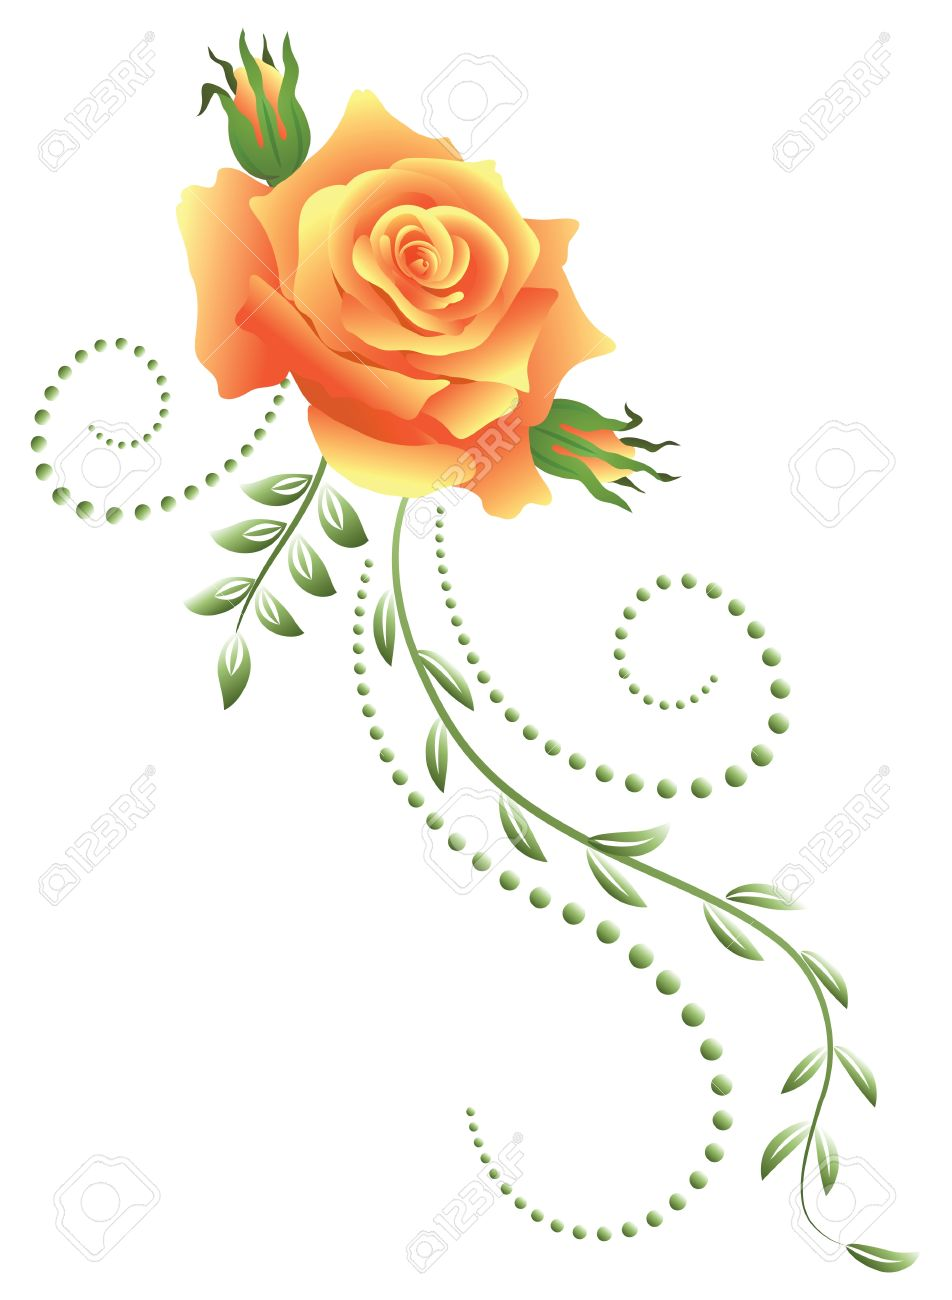 Yellow rose with green floral ornament - 14572053